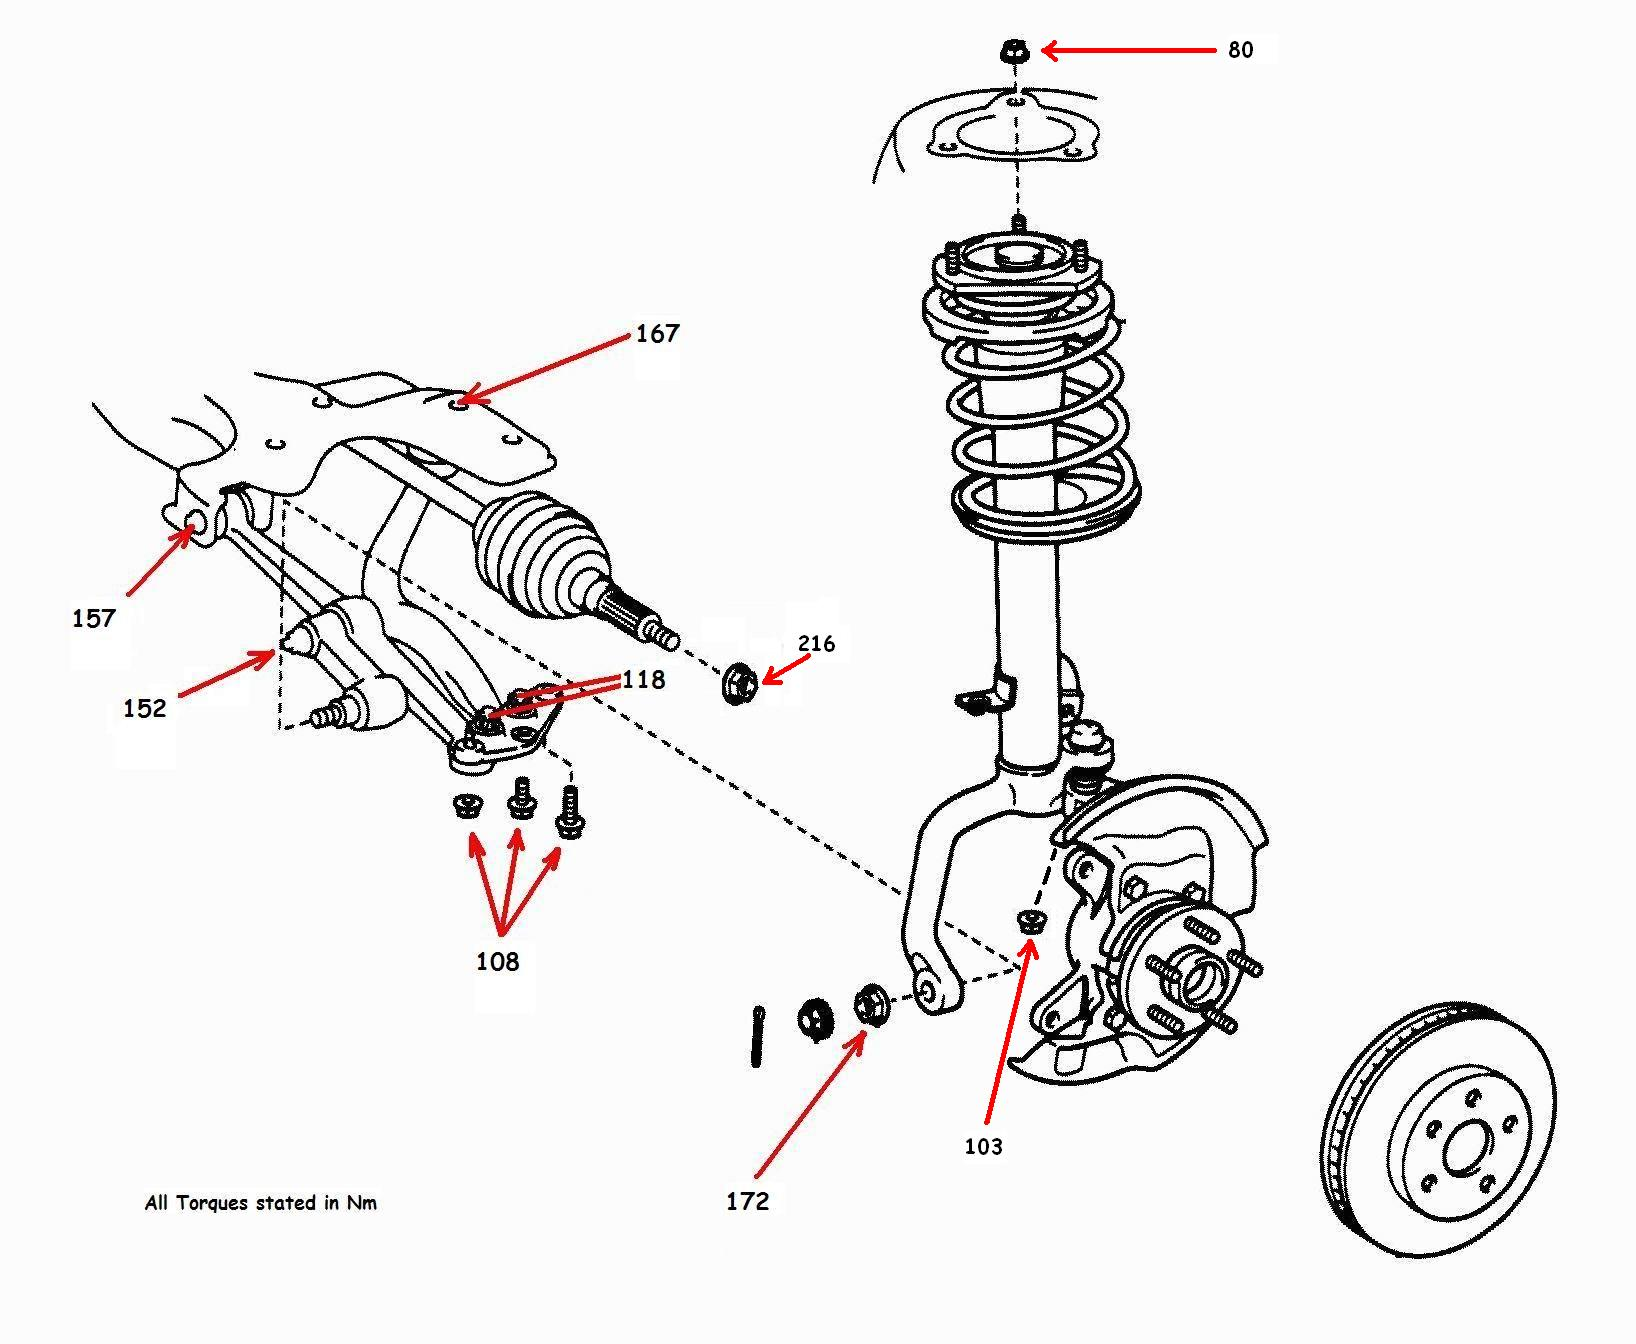 fj cruiser wiring schematic  fj  free engine image for